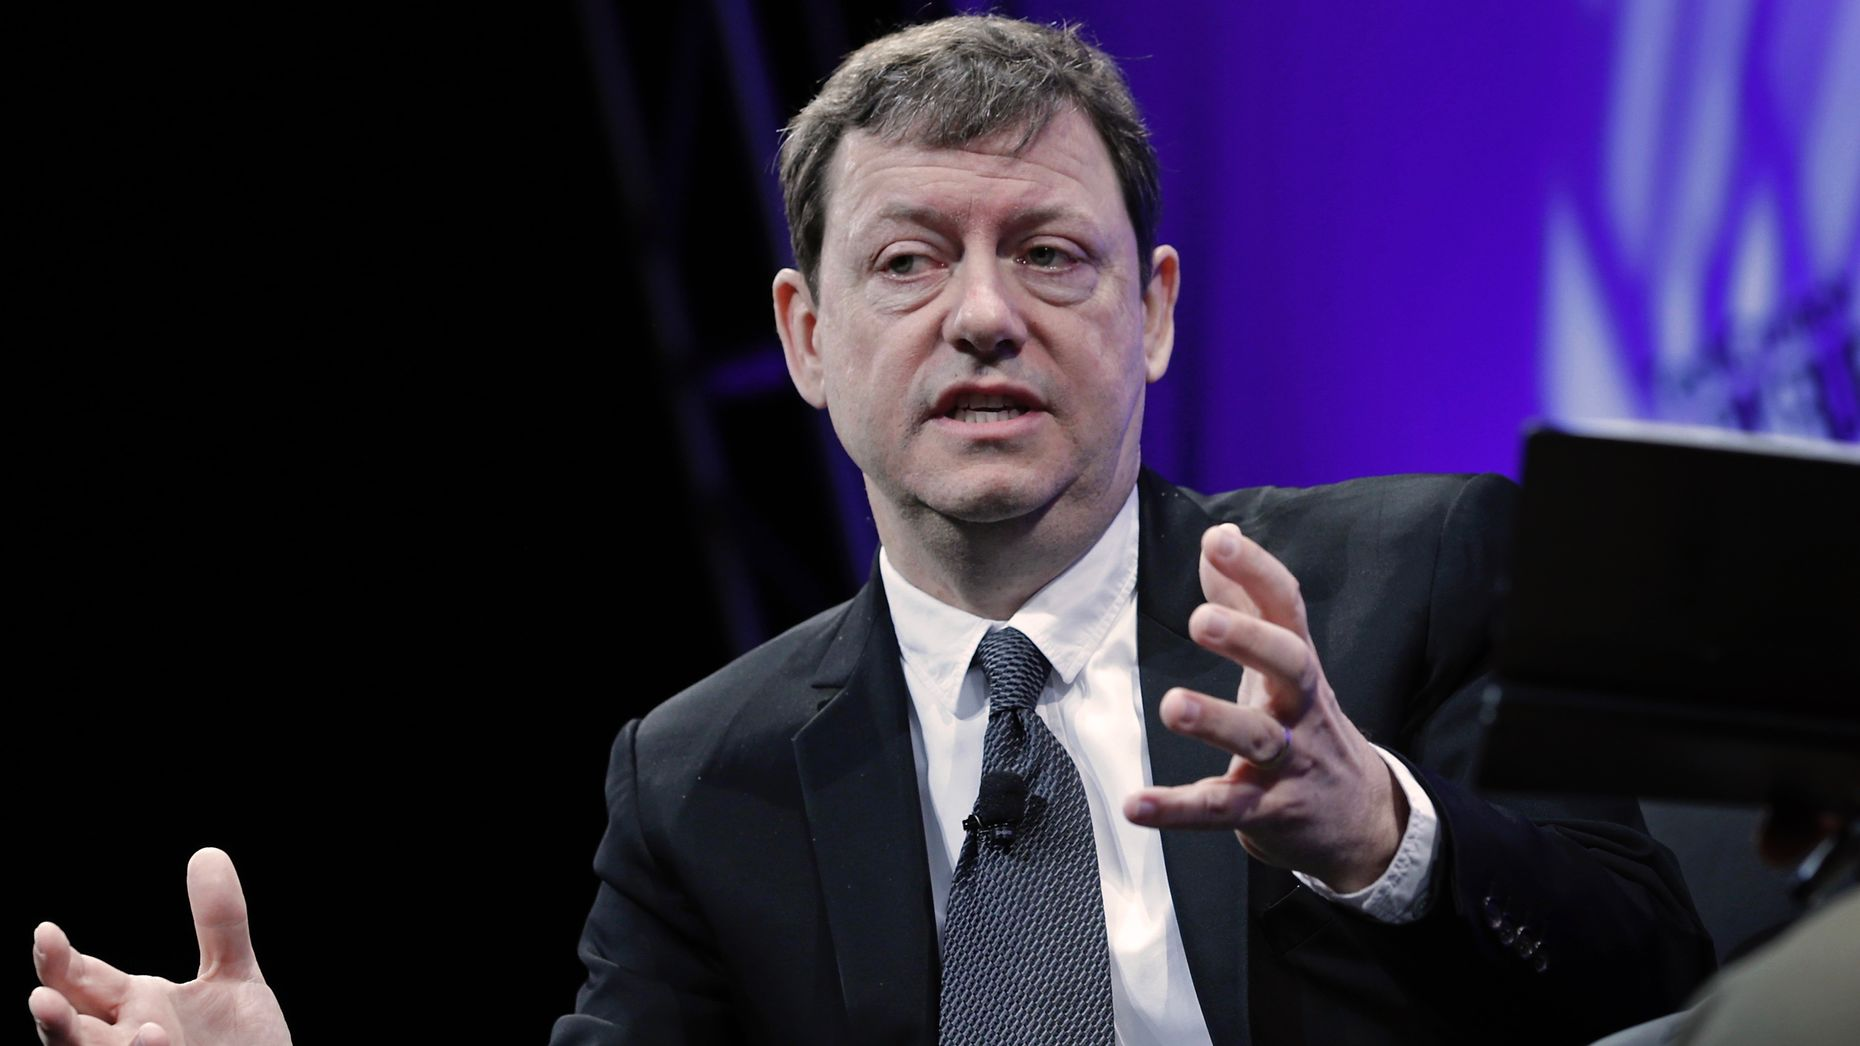 Union Square Ventures partner Fred Wilson. Photo by Bloomberg.